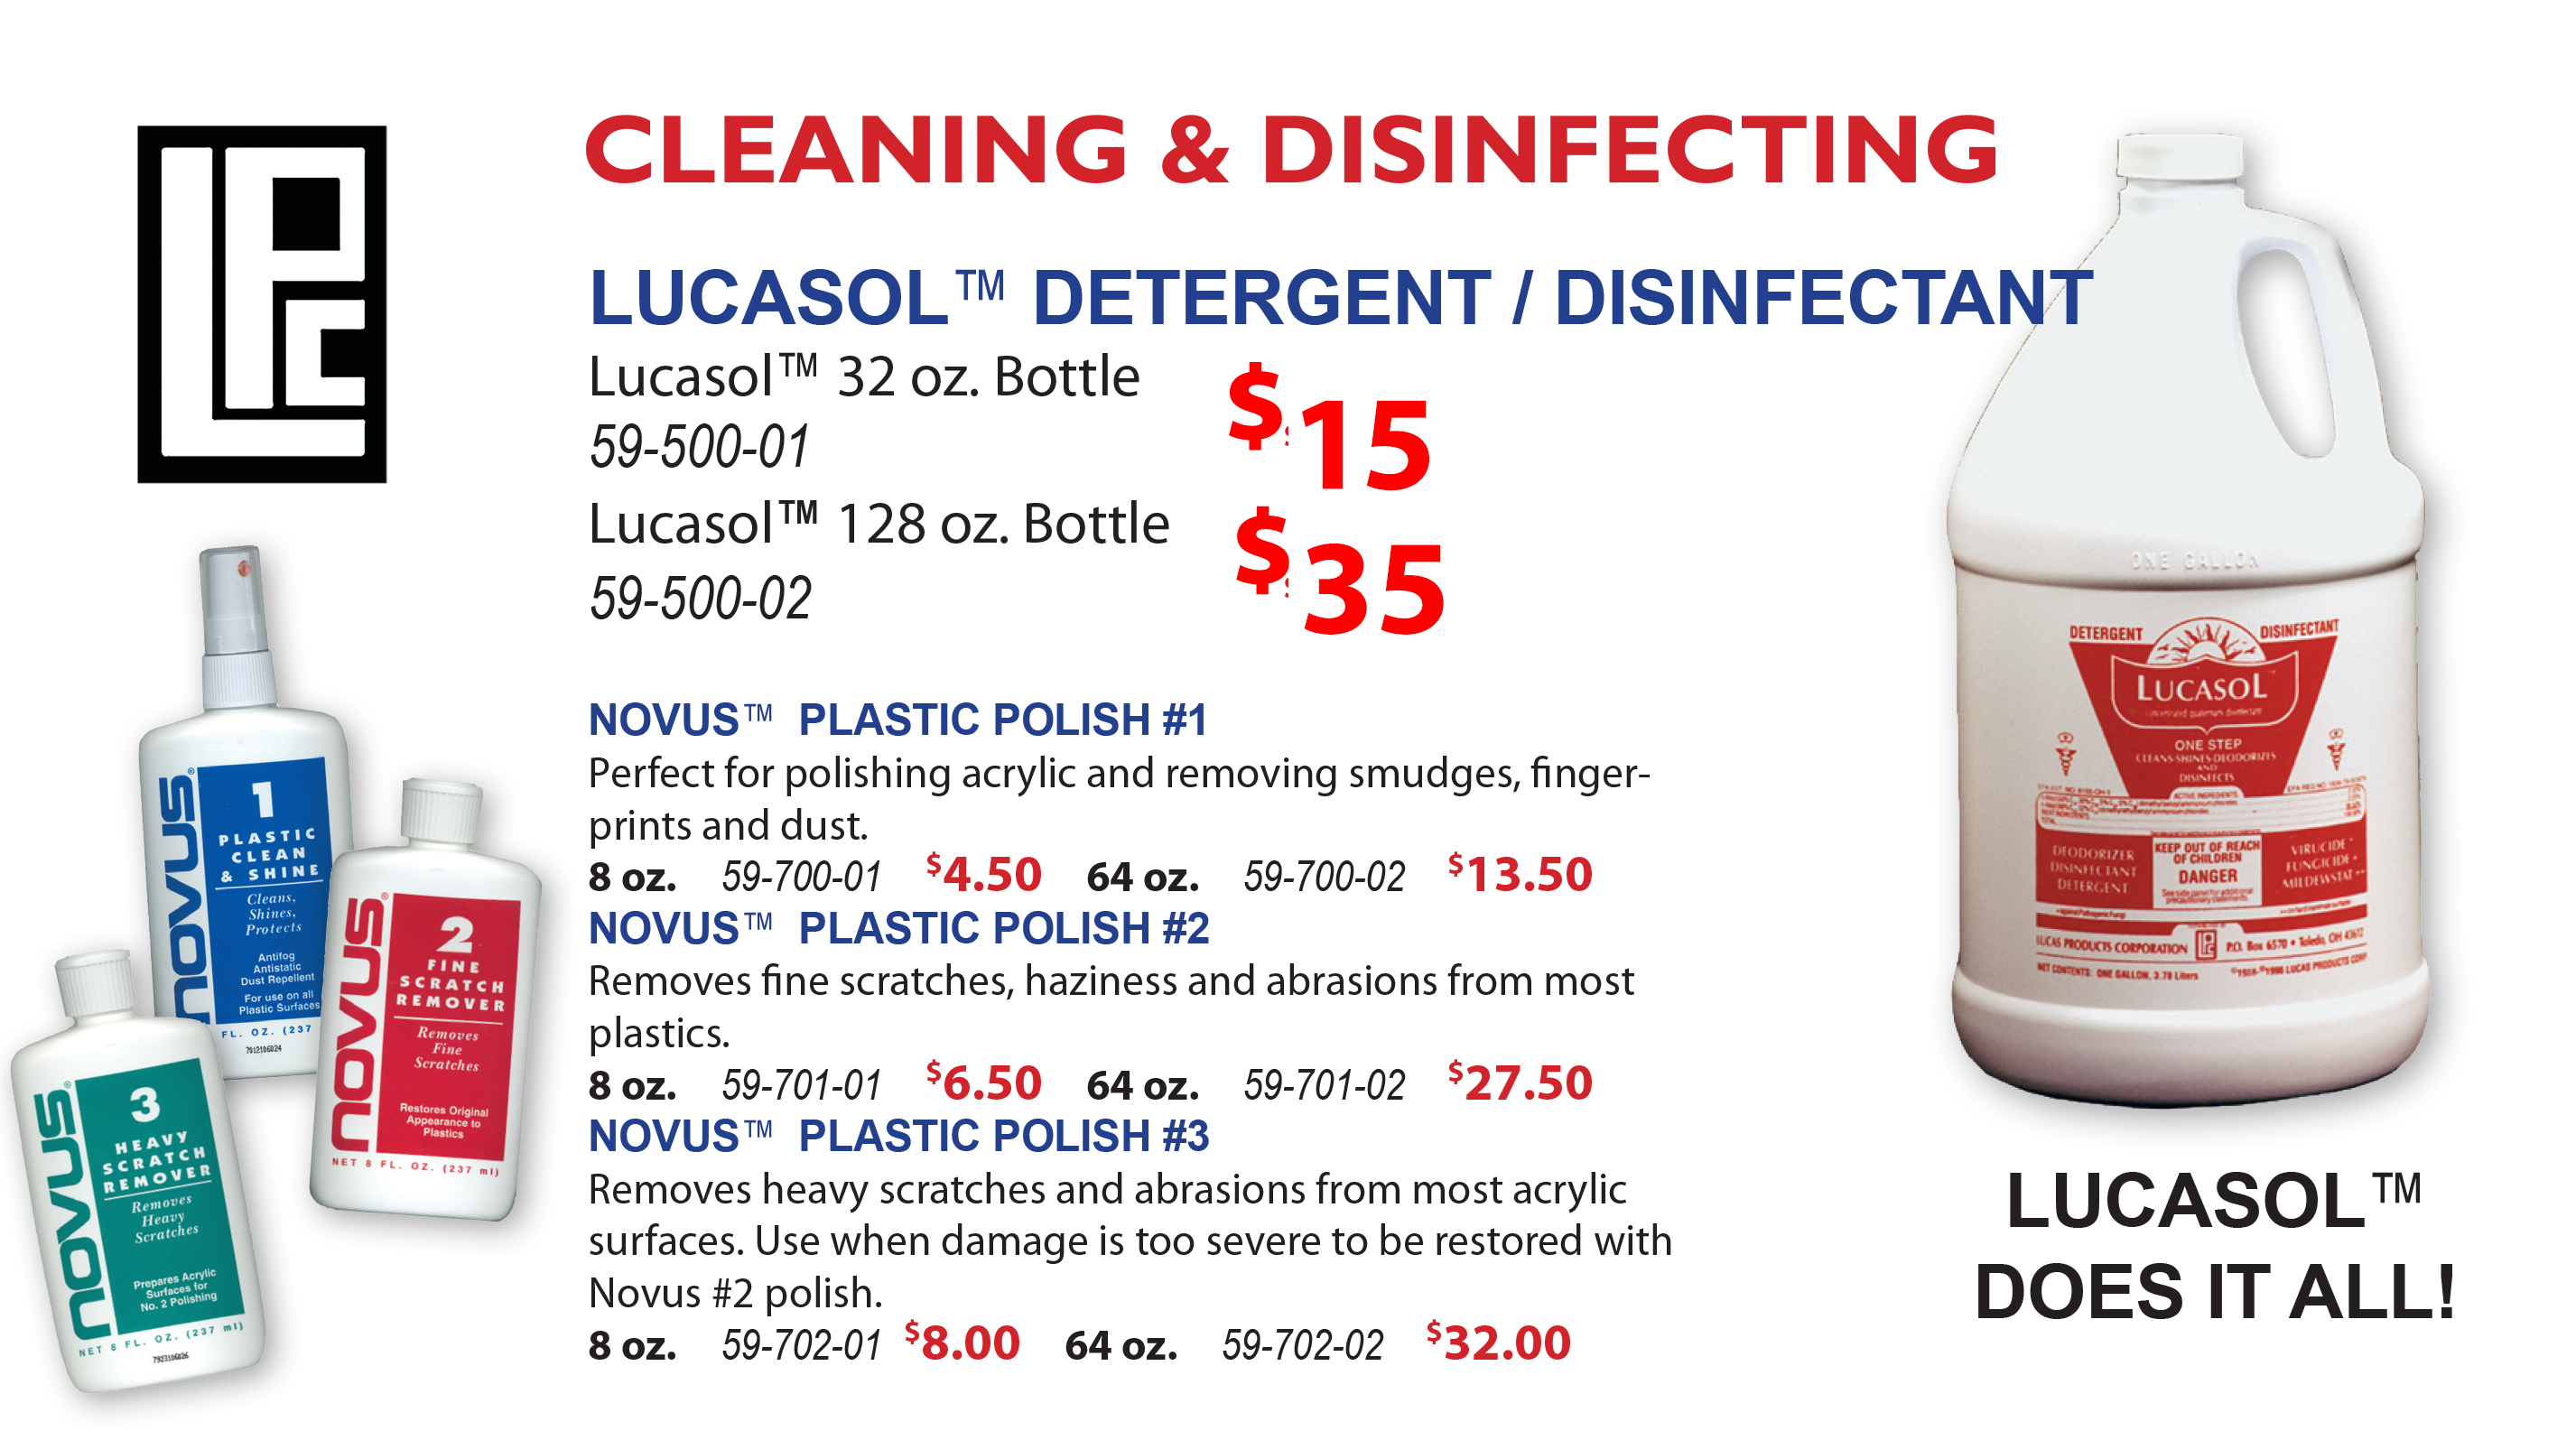 sanitizer and disinfectant pricing Lucasol brand